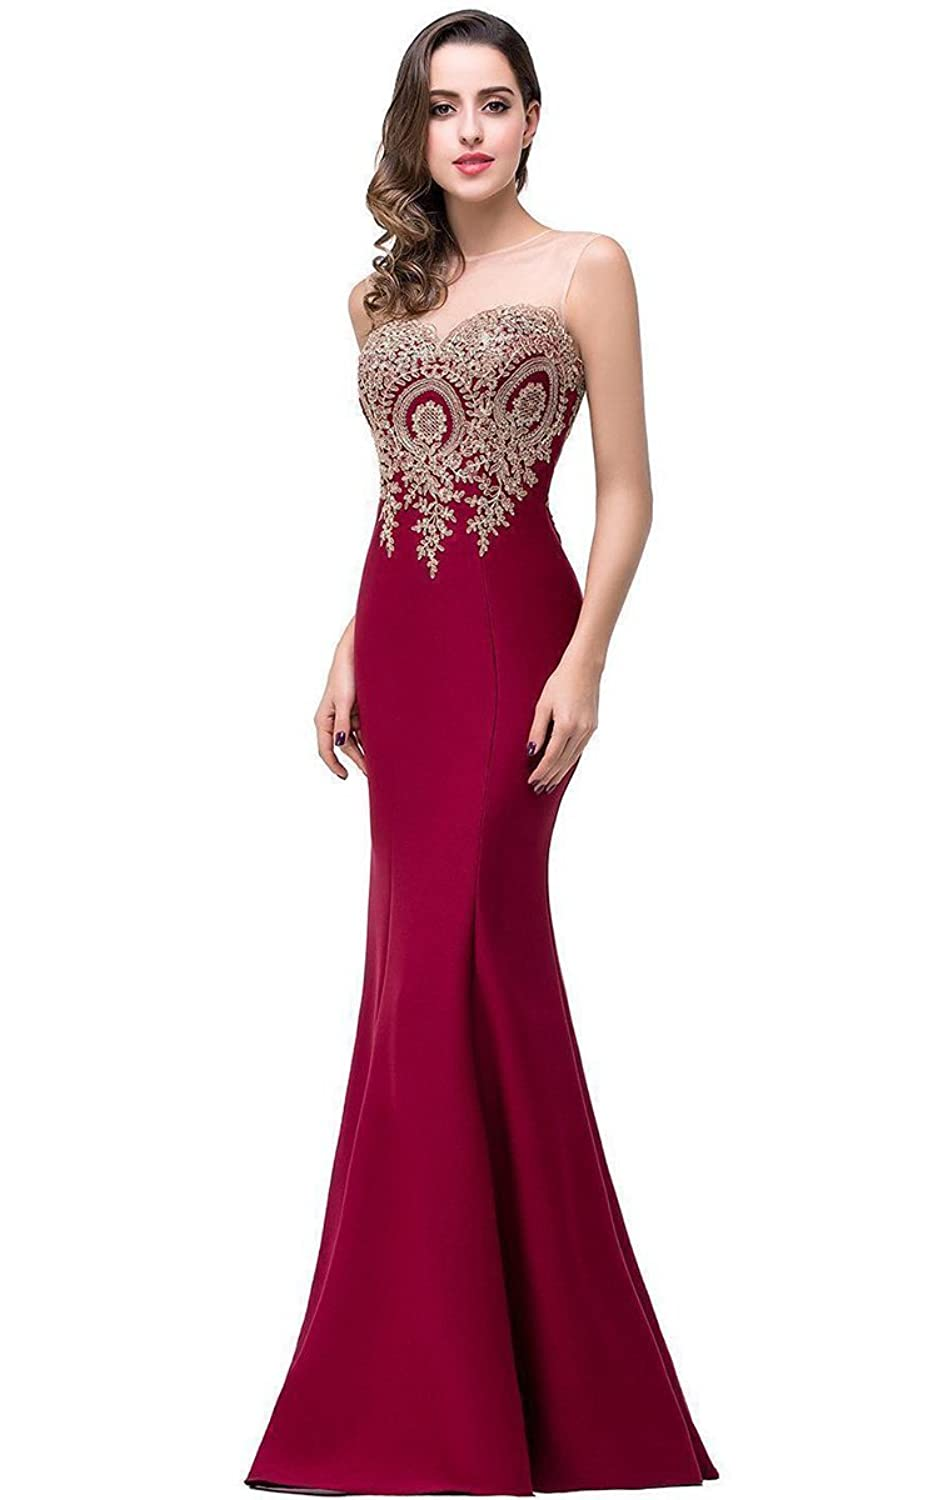 77ef2d4f01 Sleeveless Stretched Center back zipper. The fabric is light and breathable  features. Garment Care Dry Clean Suggested The elegant and sexy evening  dress ...